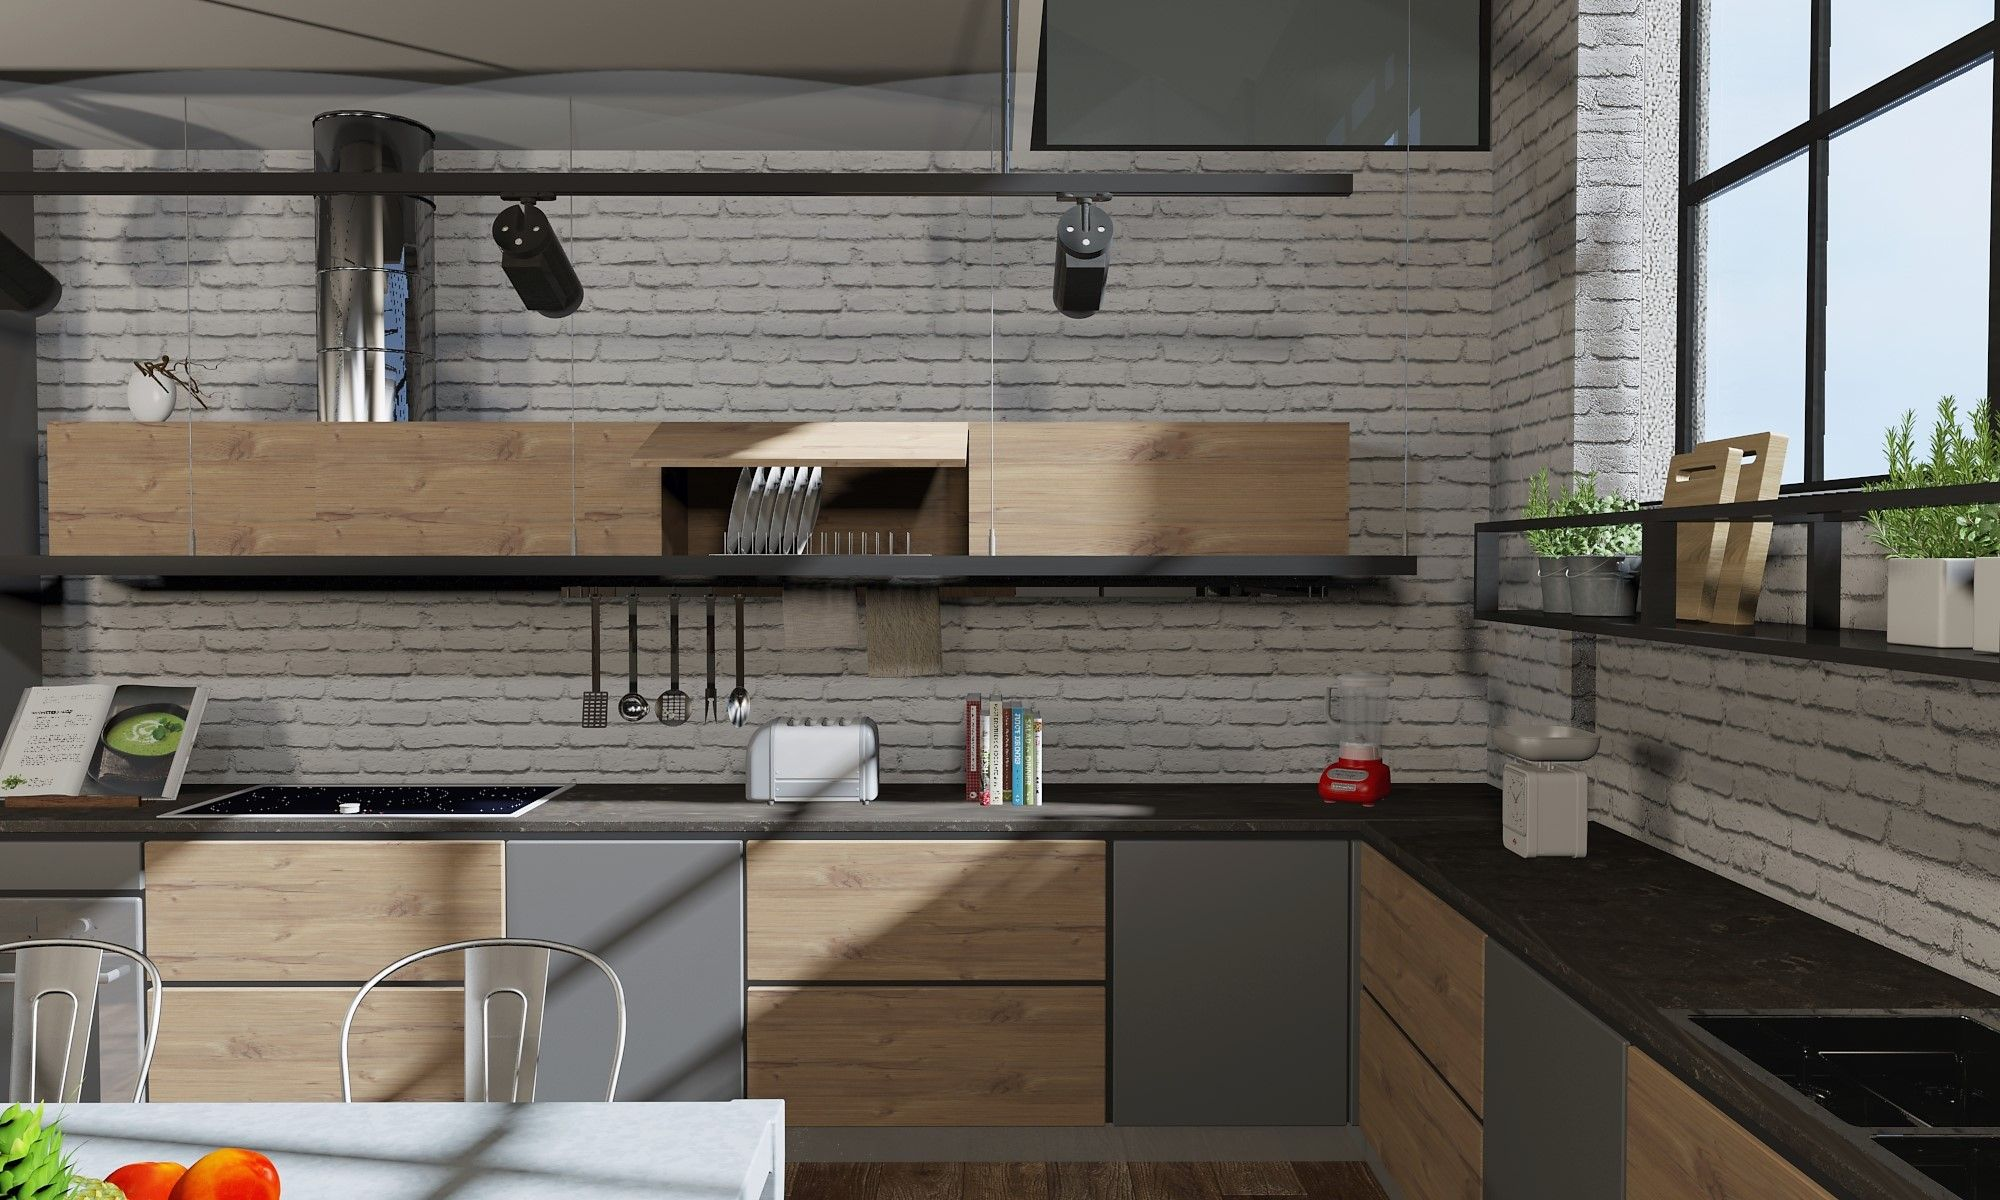 #cucinadidesign #industrialdesign #rendering #kitchen